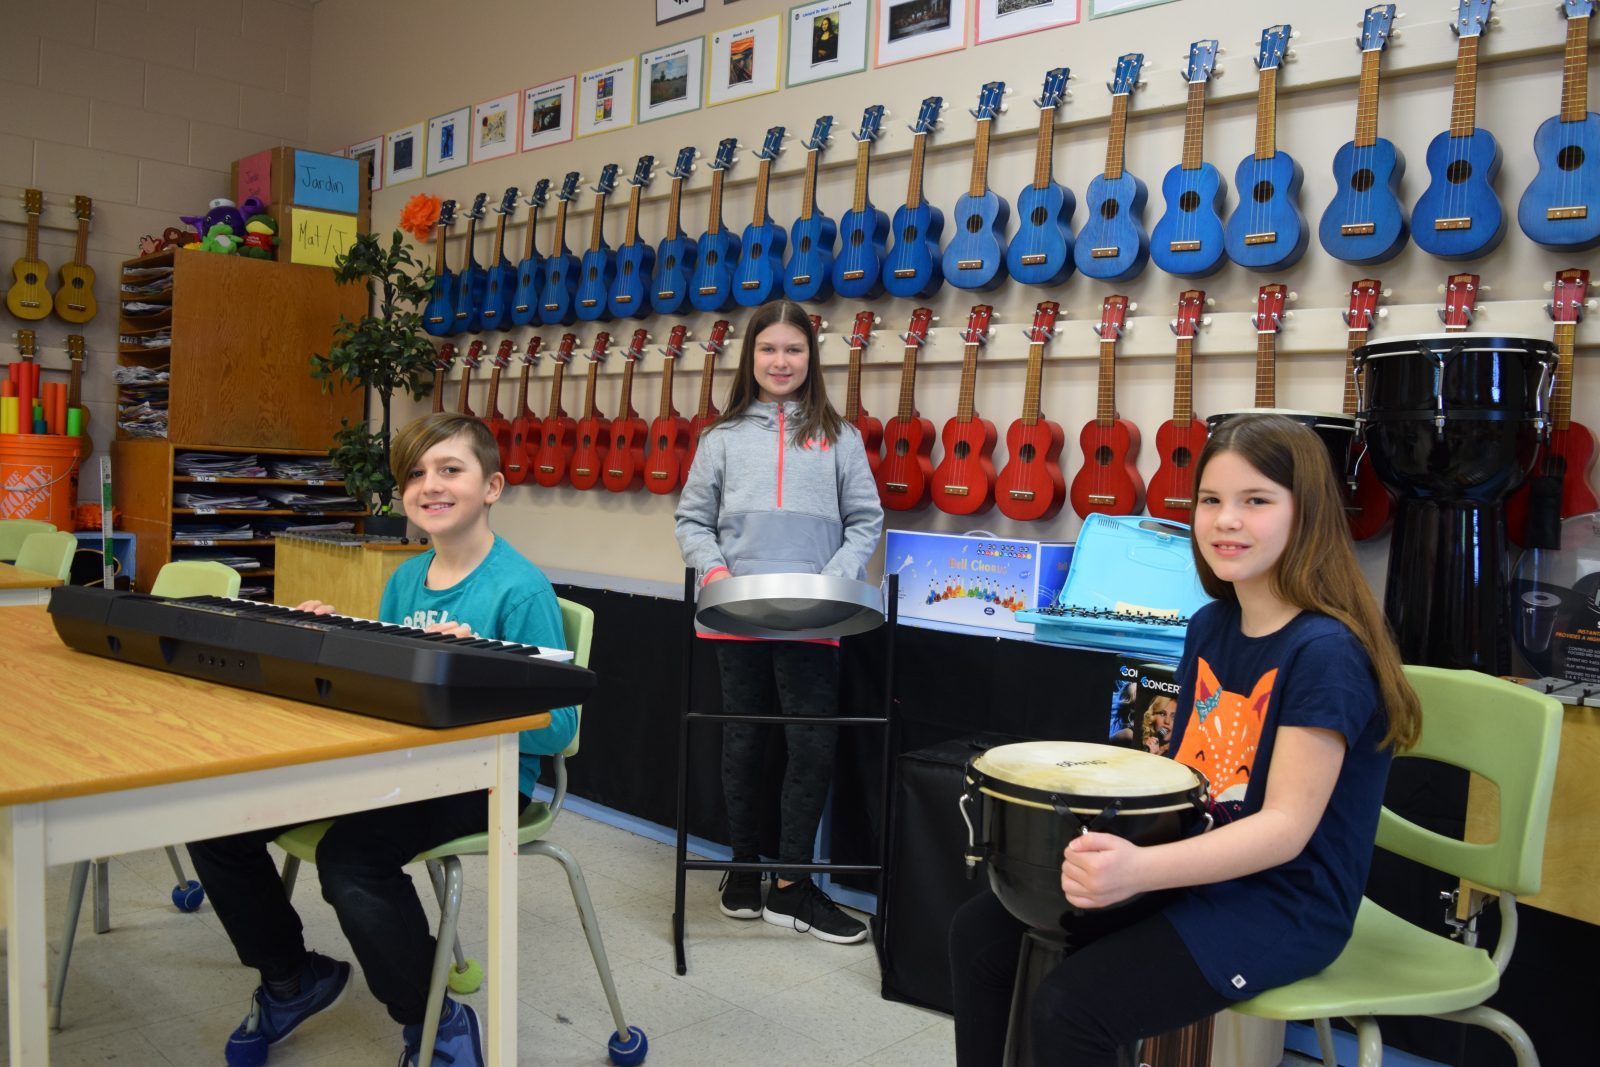 Making music at Notre Dame